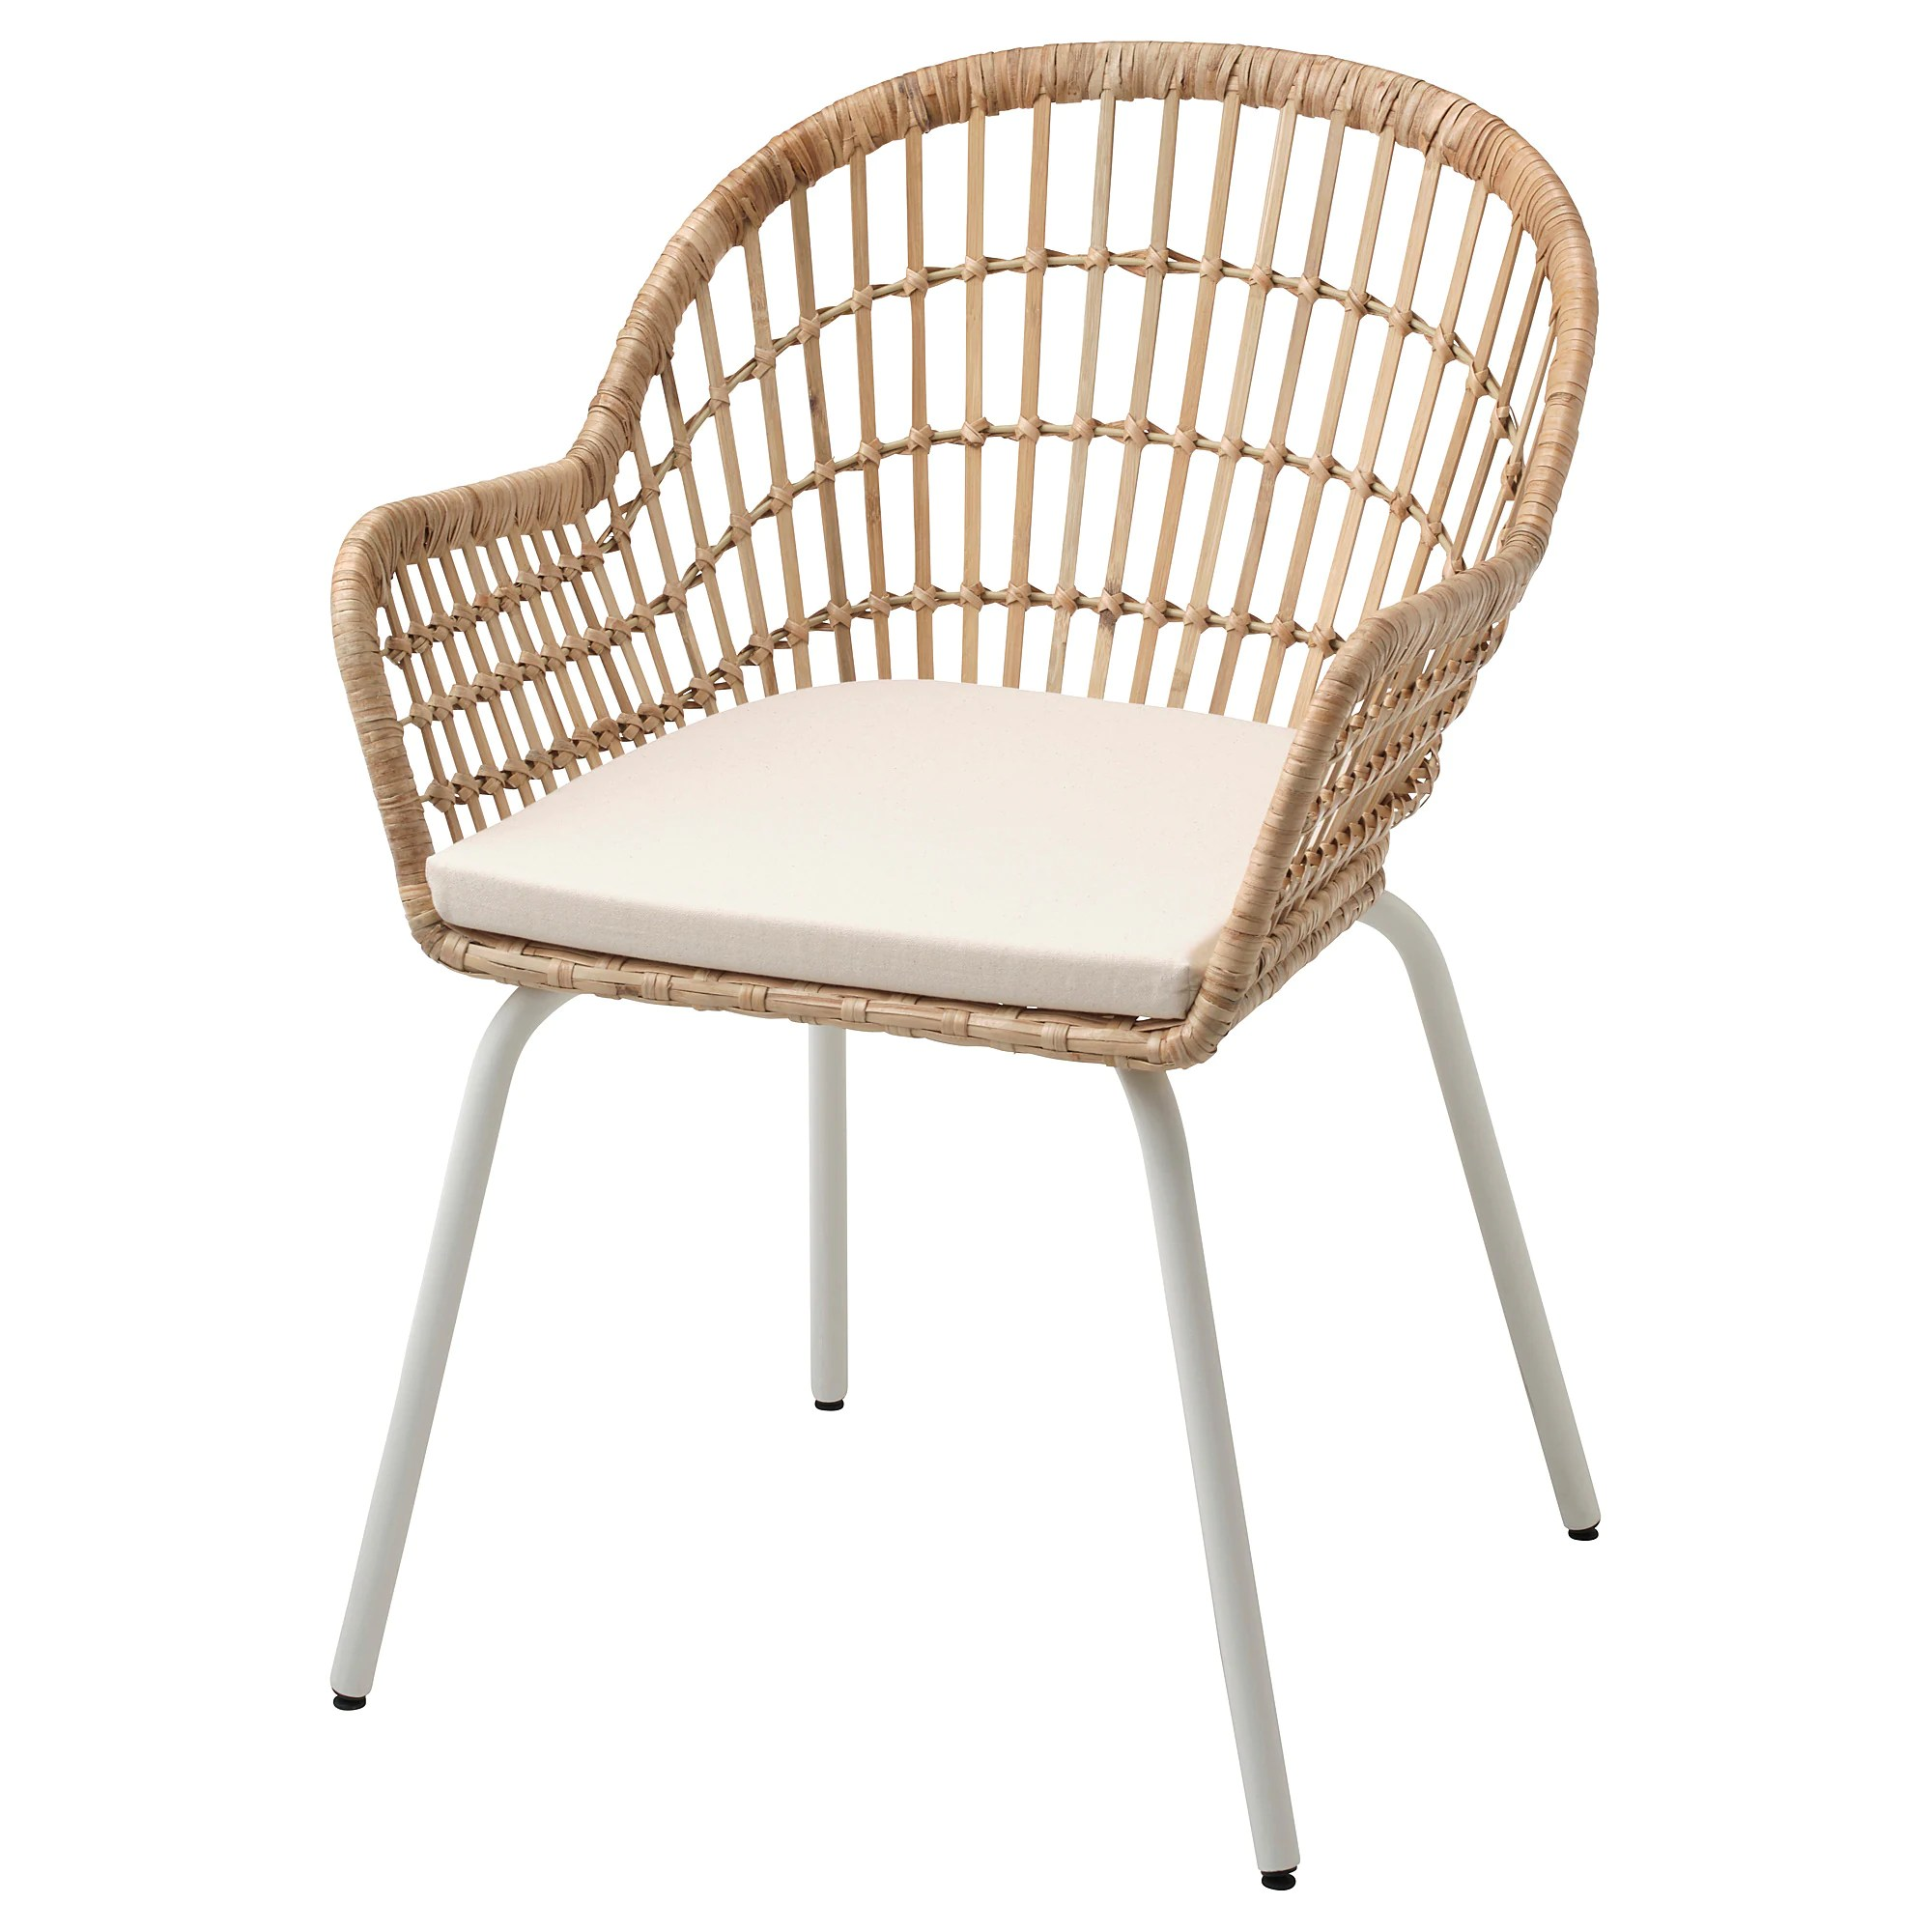 Rattan Ikea Nilsove Norna Chair With Chair Pad Rattan White Laila Natural